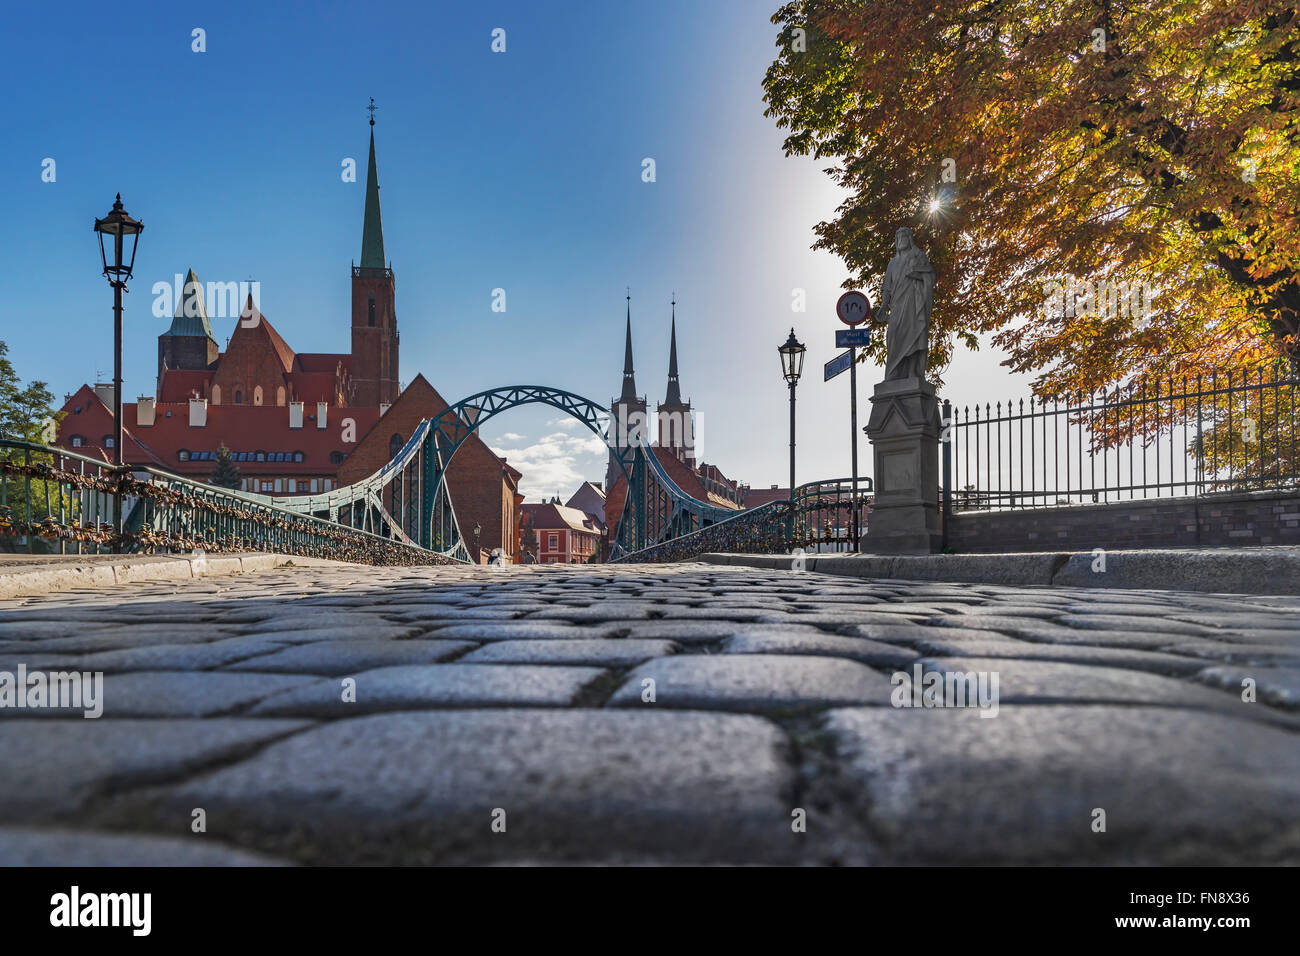 The Cathedral Bridge connects the Sand Island with the Cathedral Island, Wroclaw, Lower Silesia Voivodeship, Poland, - Stock Image